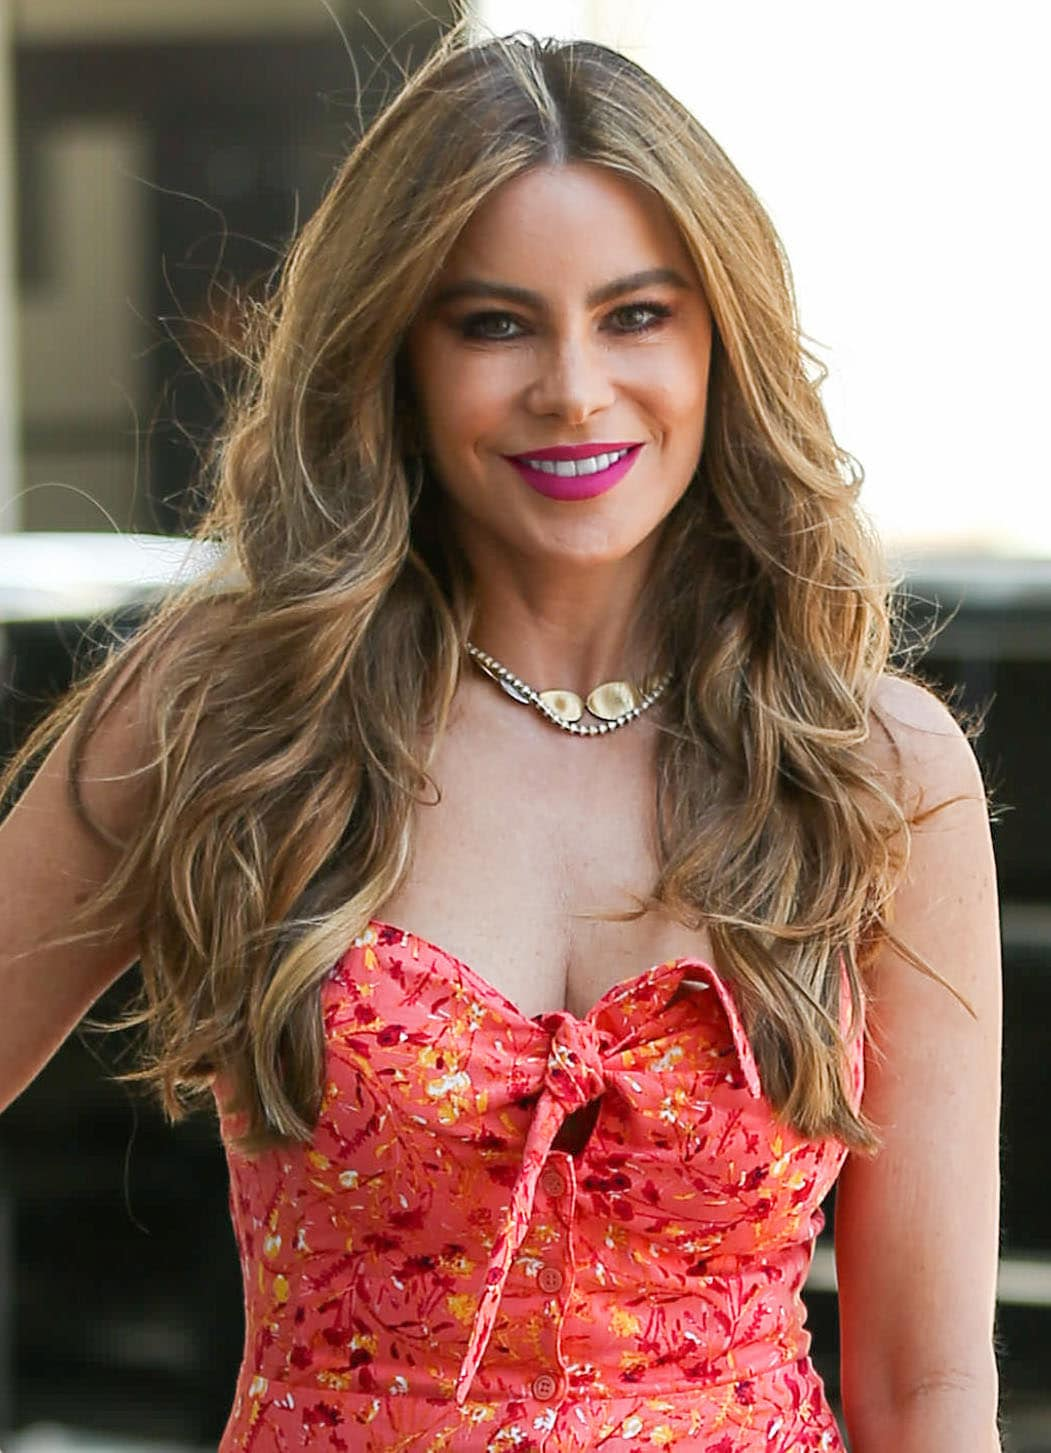 Sofia Vergara wears her signature curls and fuchsia pink lip color